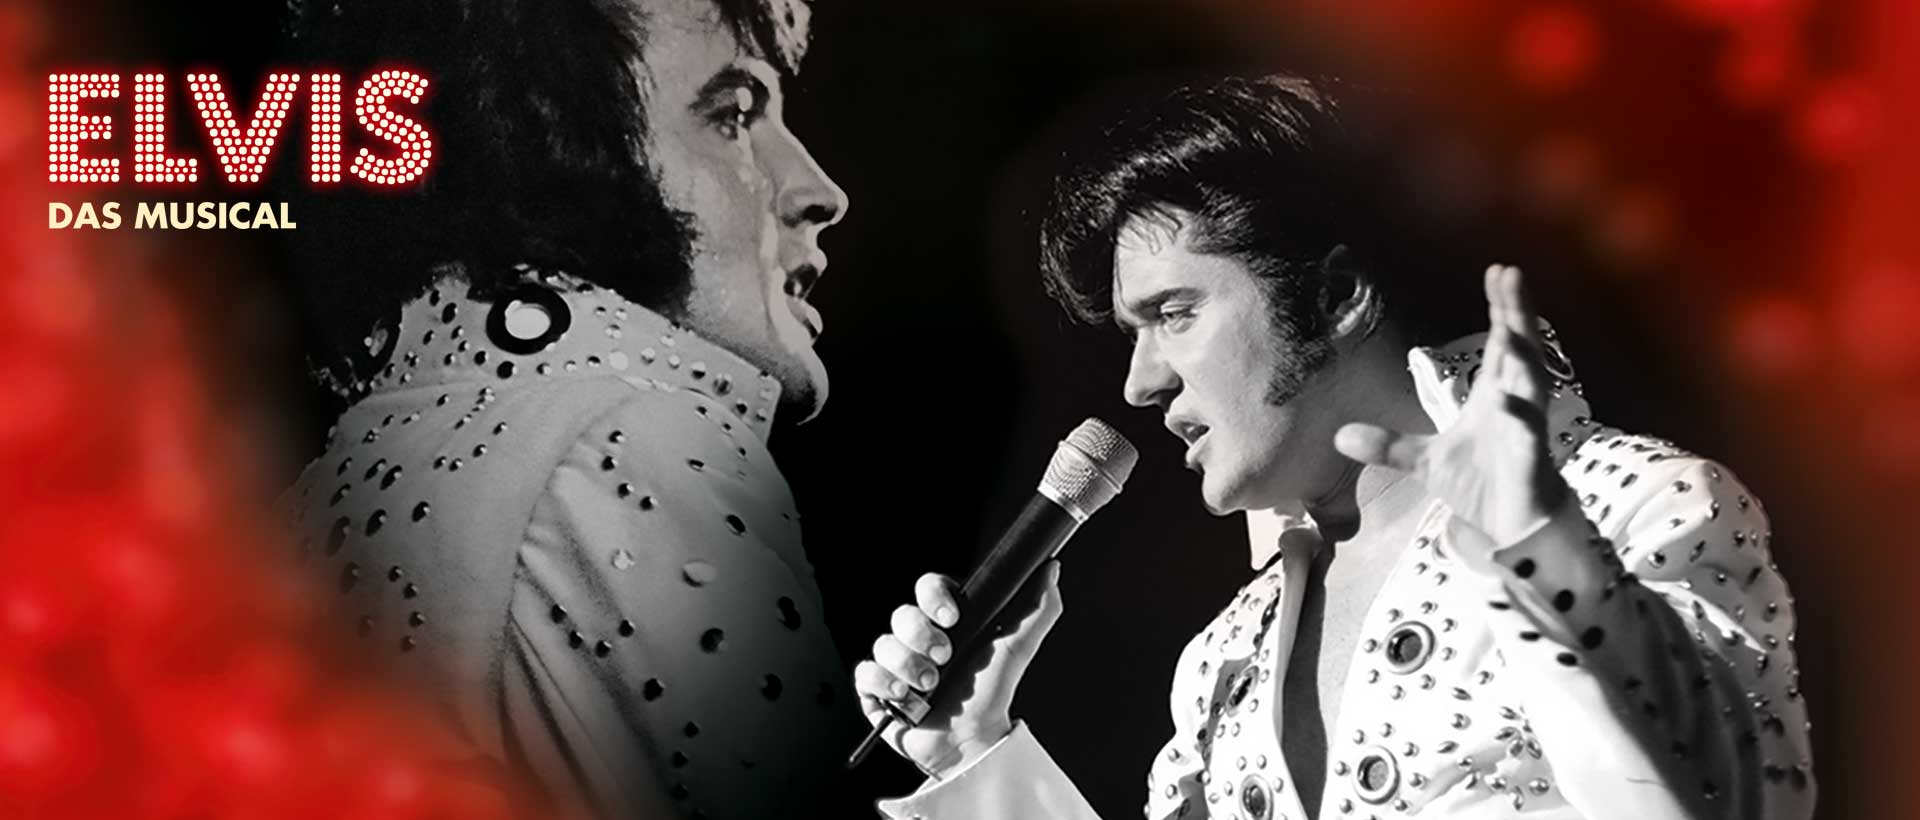 Elvis - Das Musical 31.07. - 08.09.2019